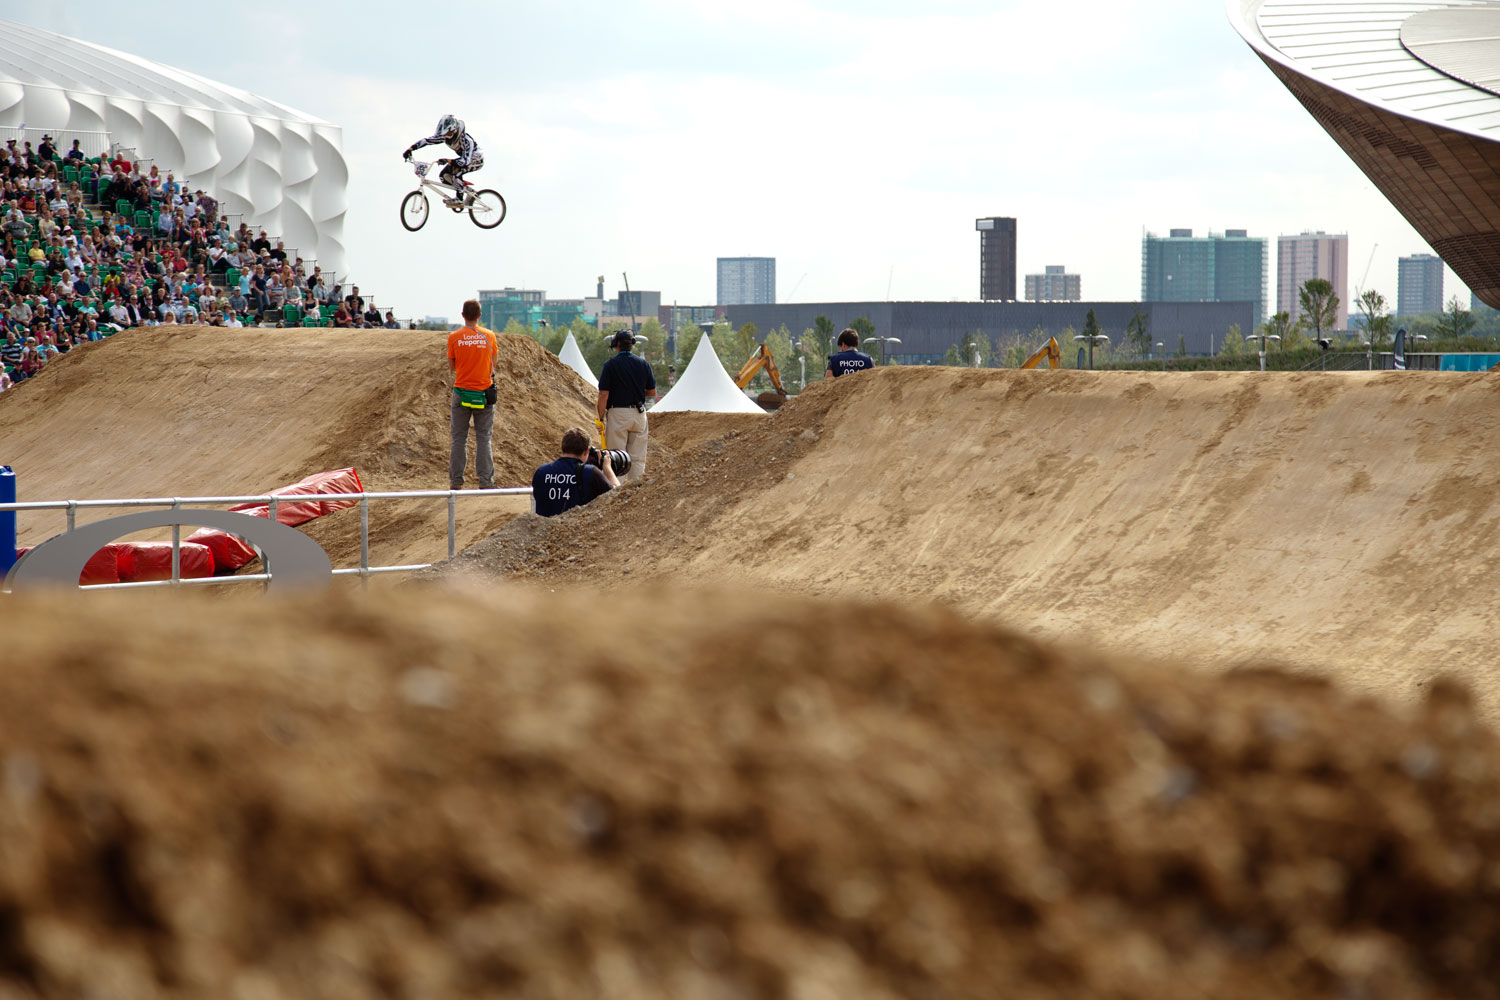 BMX London 2012 test event, Supercross, August 2011